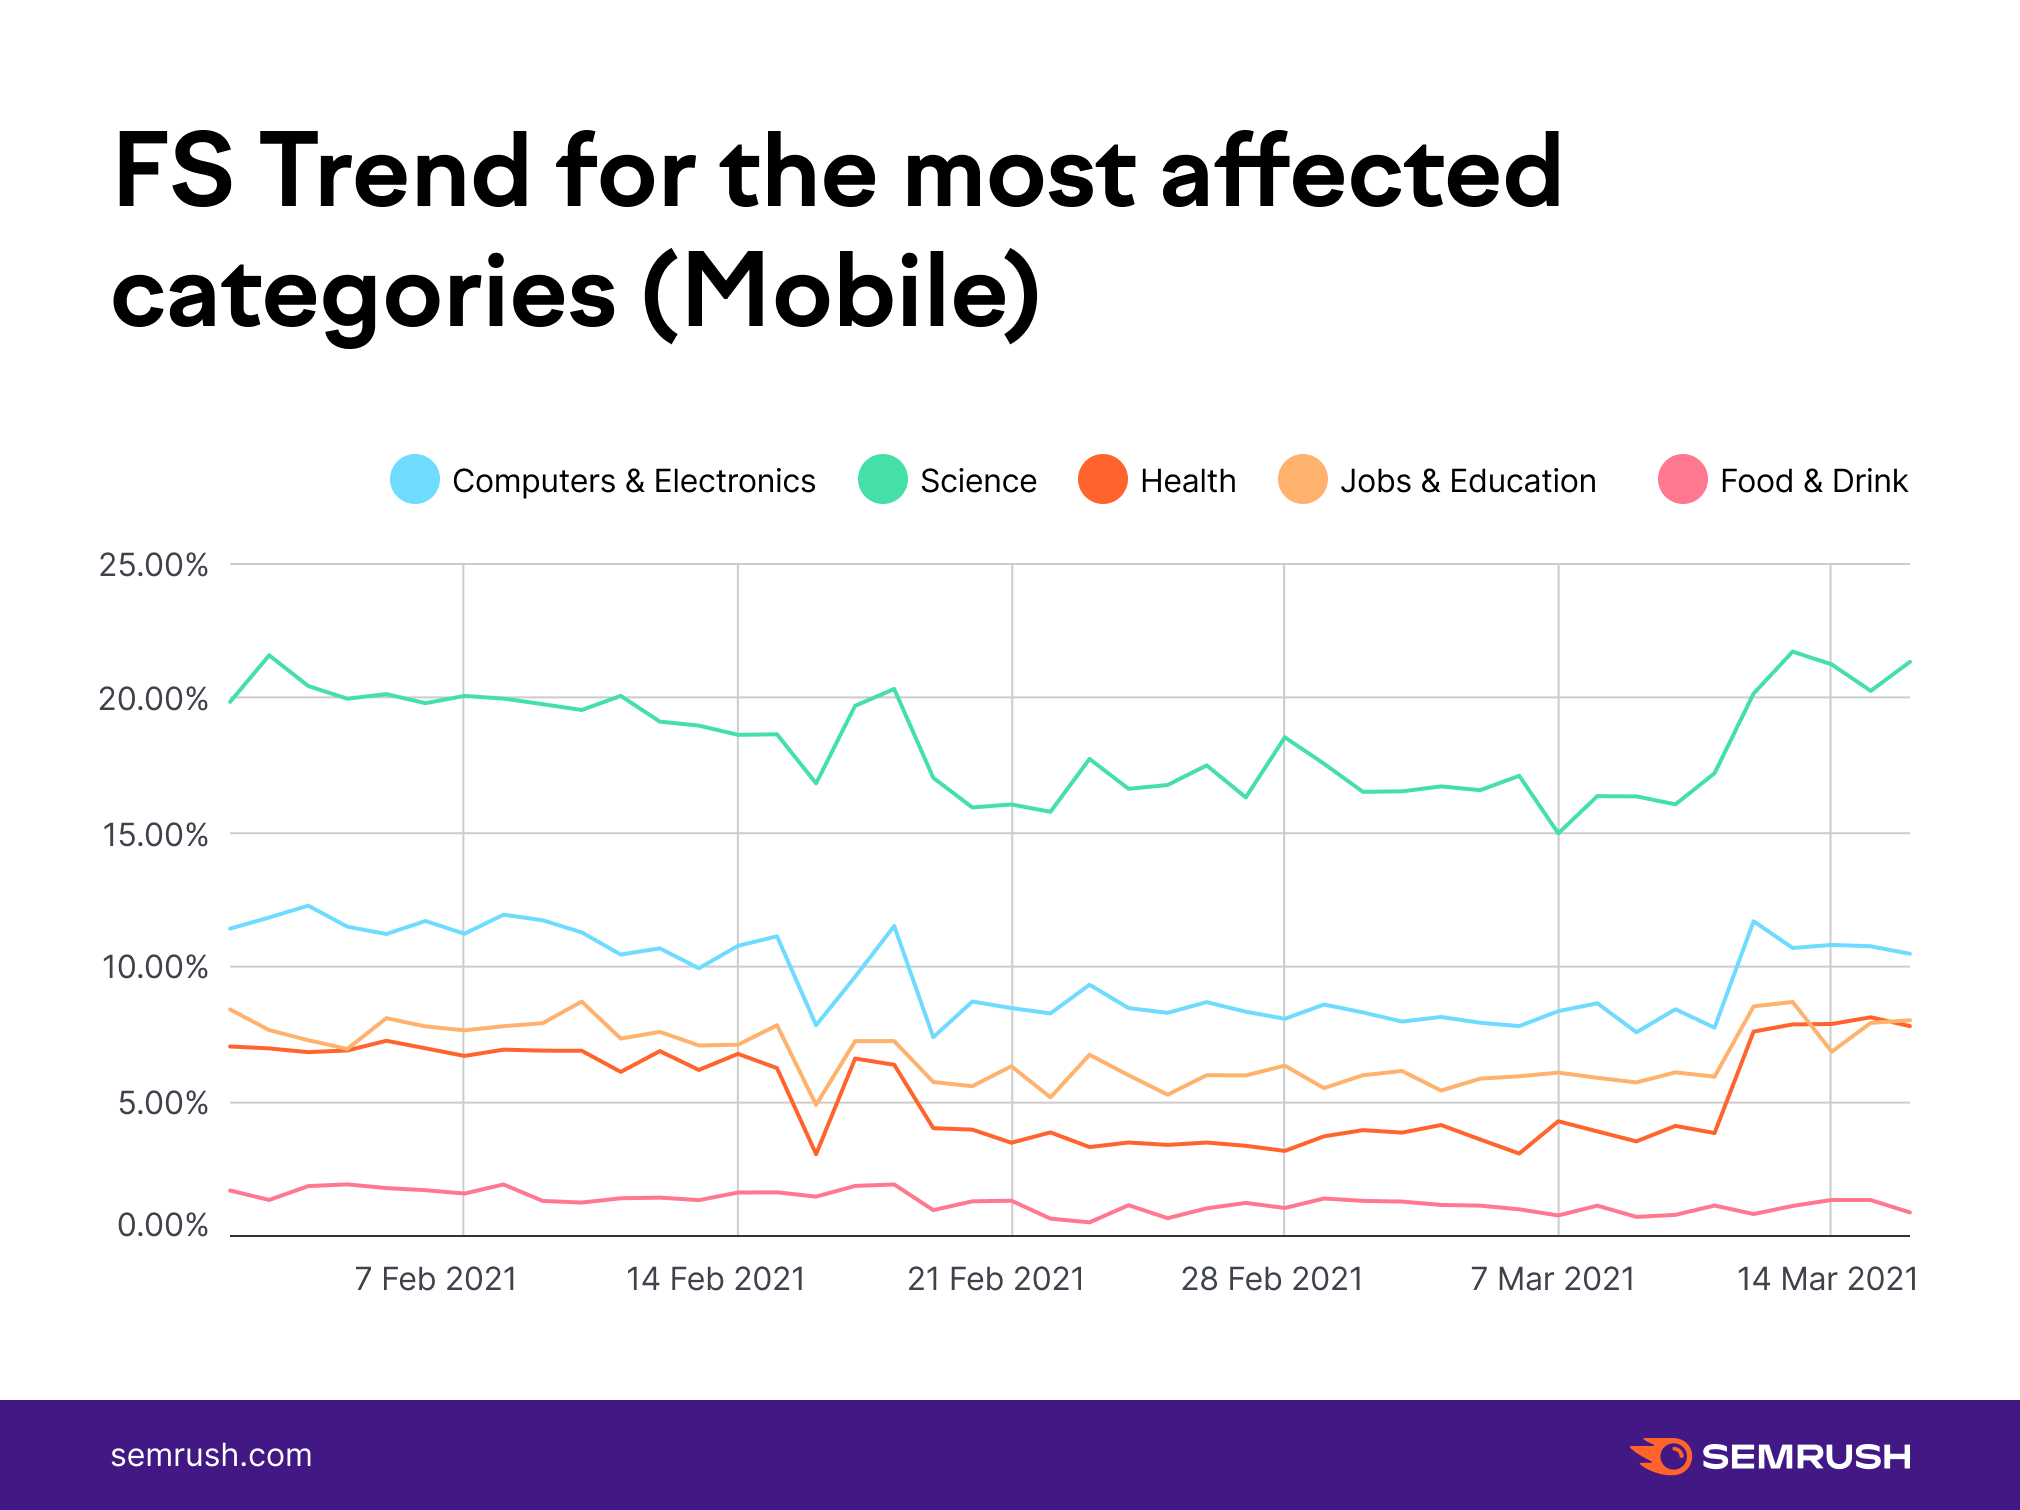 FS Trend for influenced categories mobile